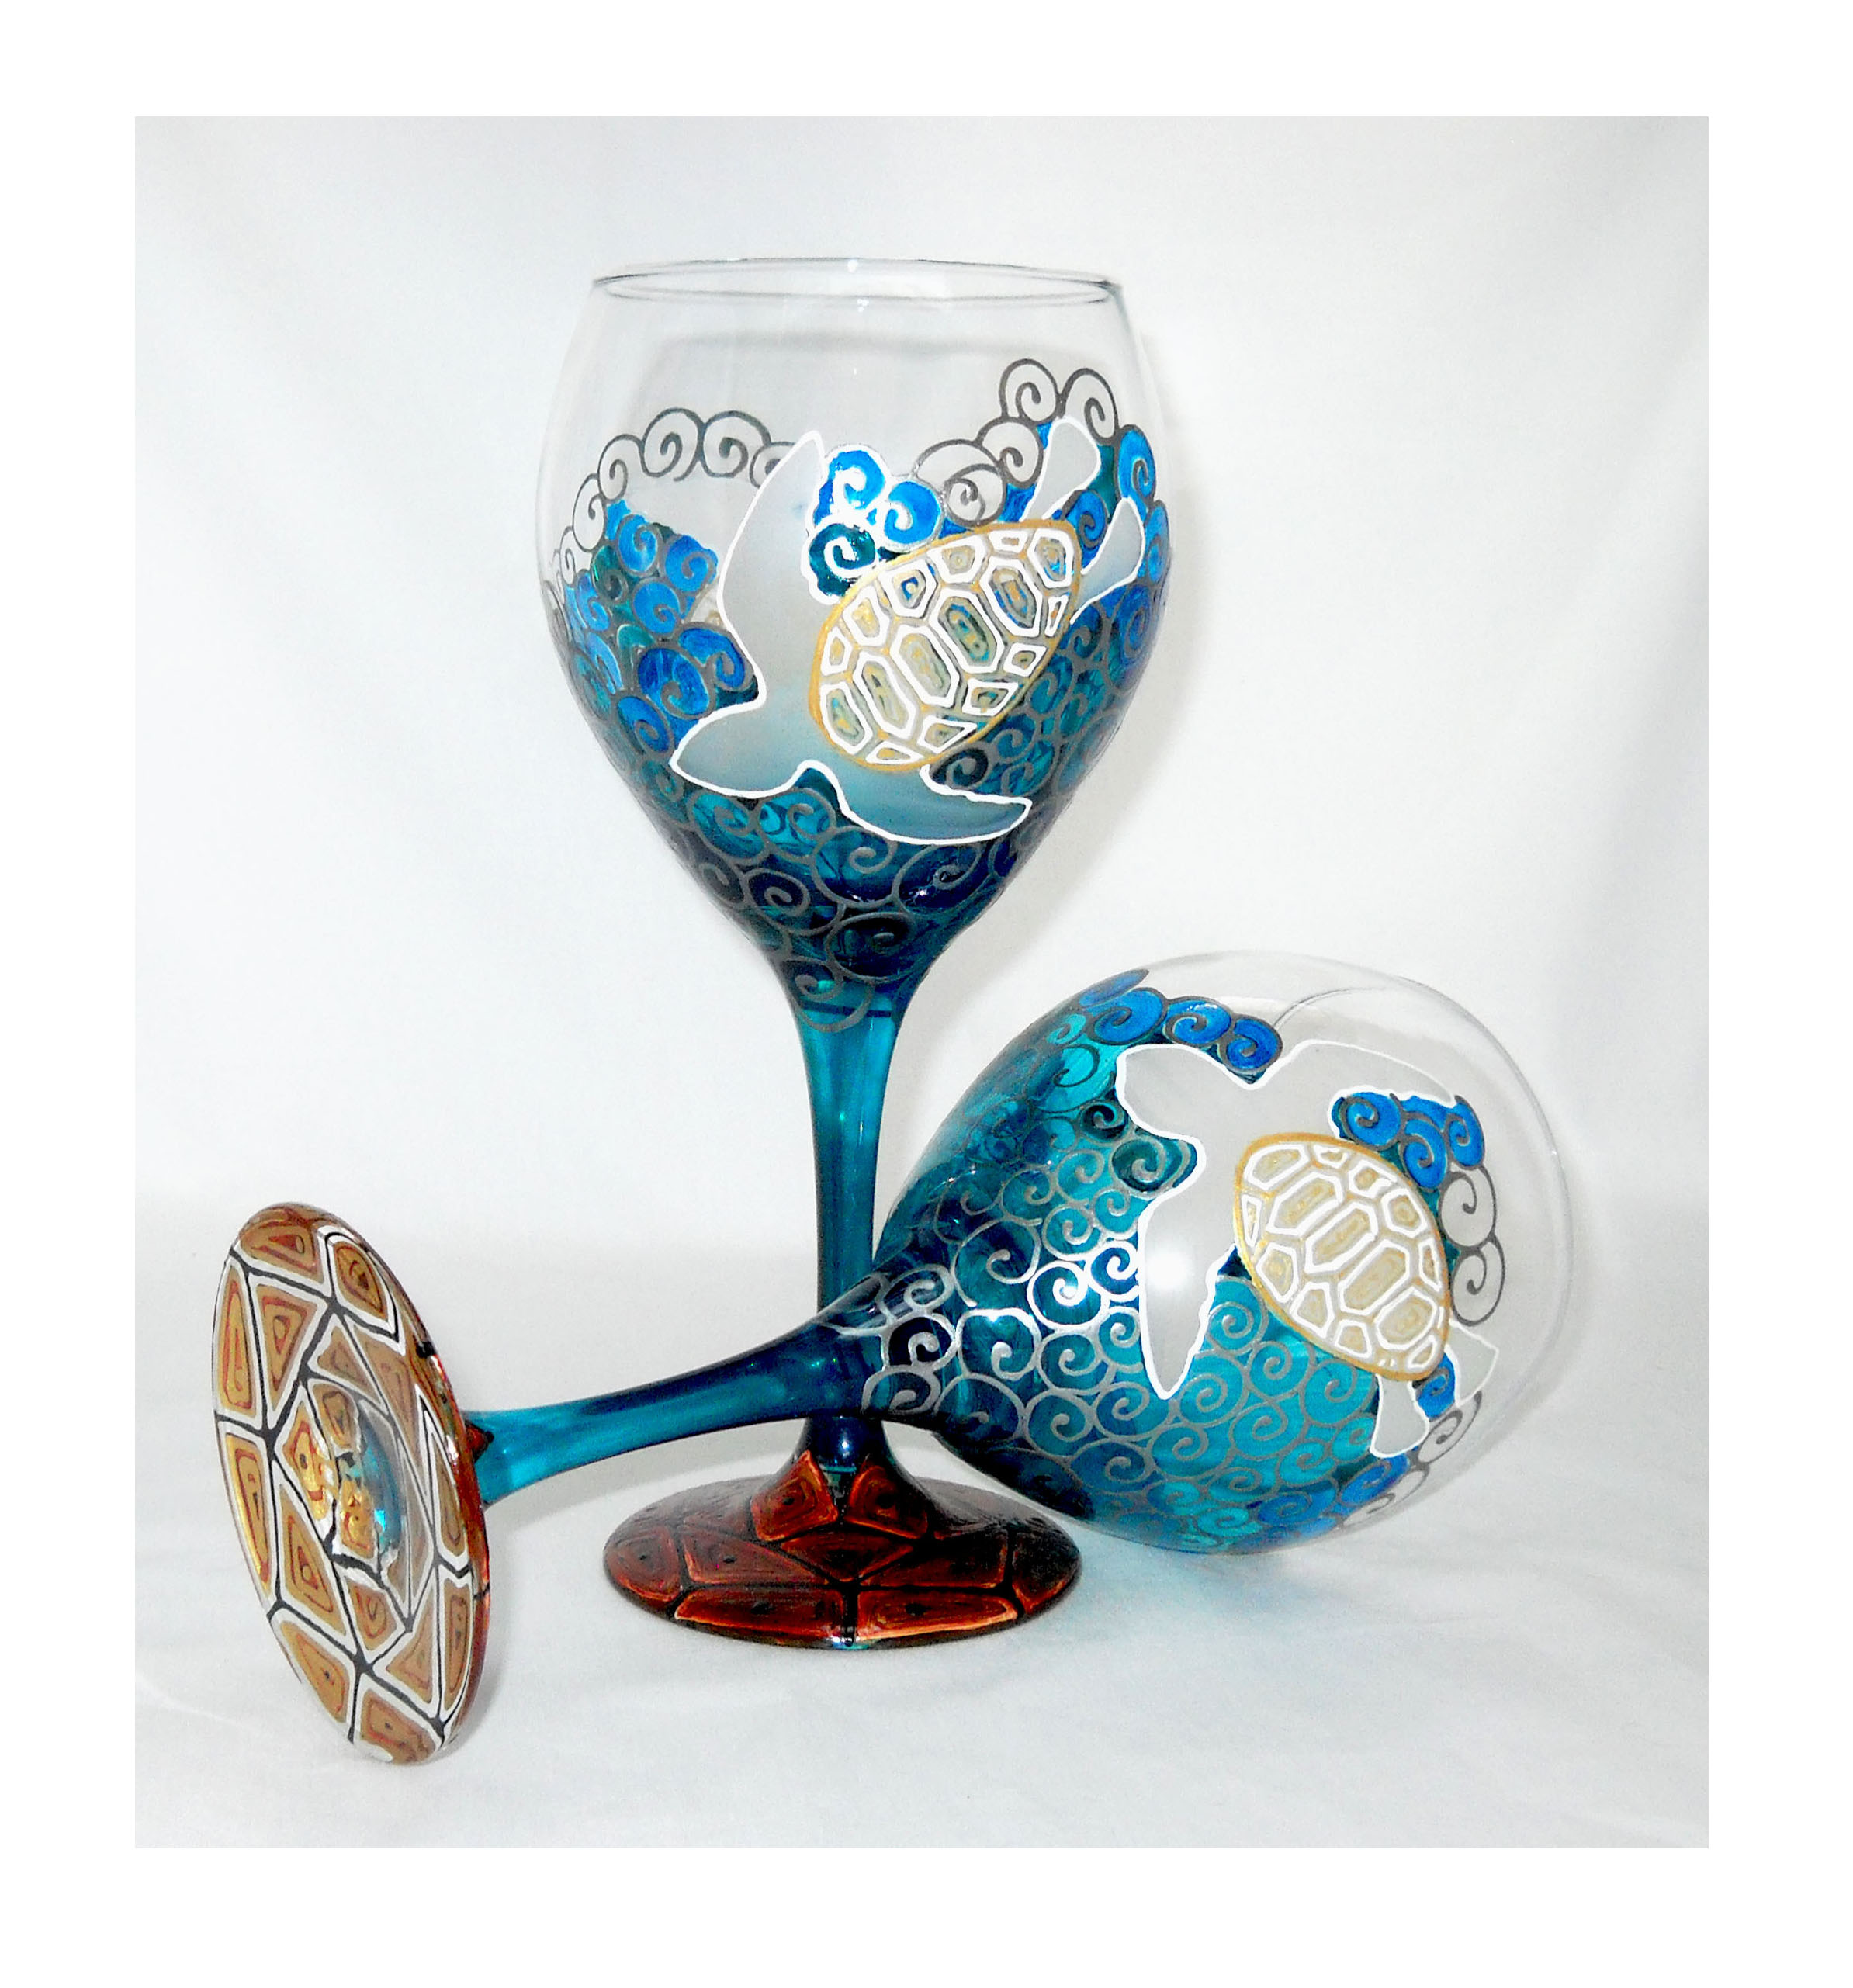 Sea Turtle Goblets hand painted glassware 20 oz. 'GalaxSea' Collection